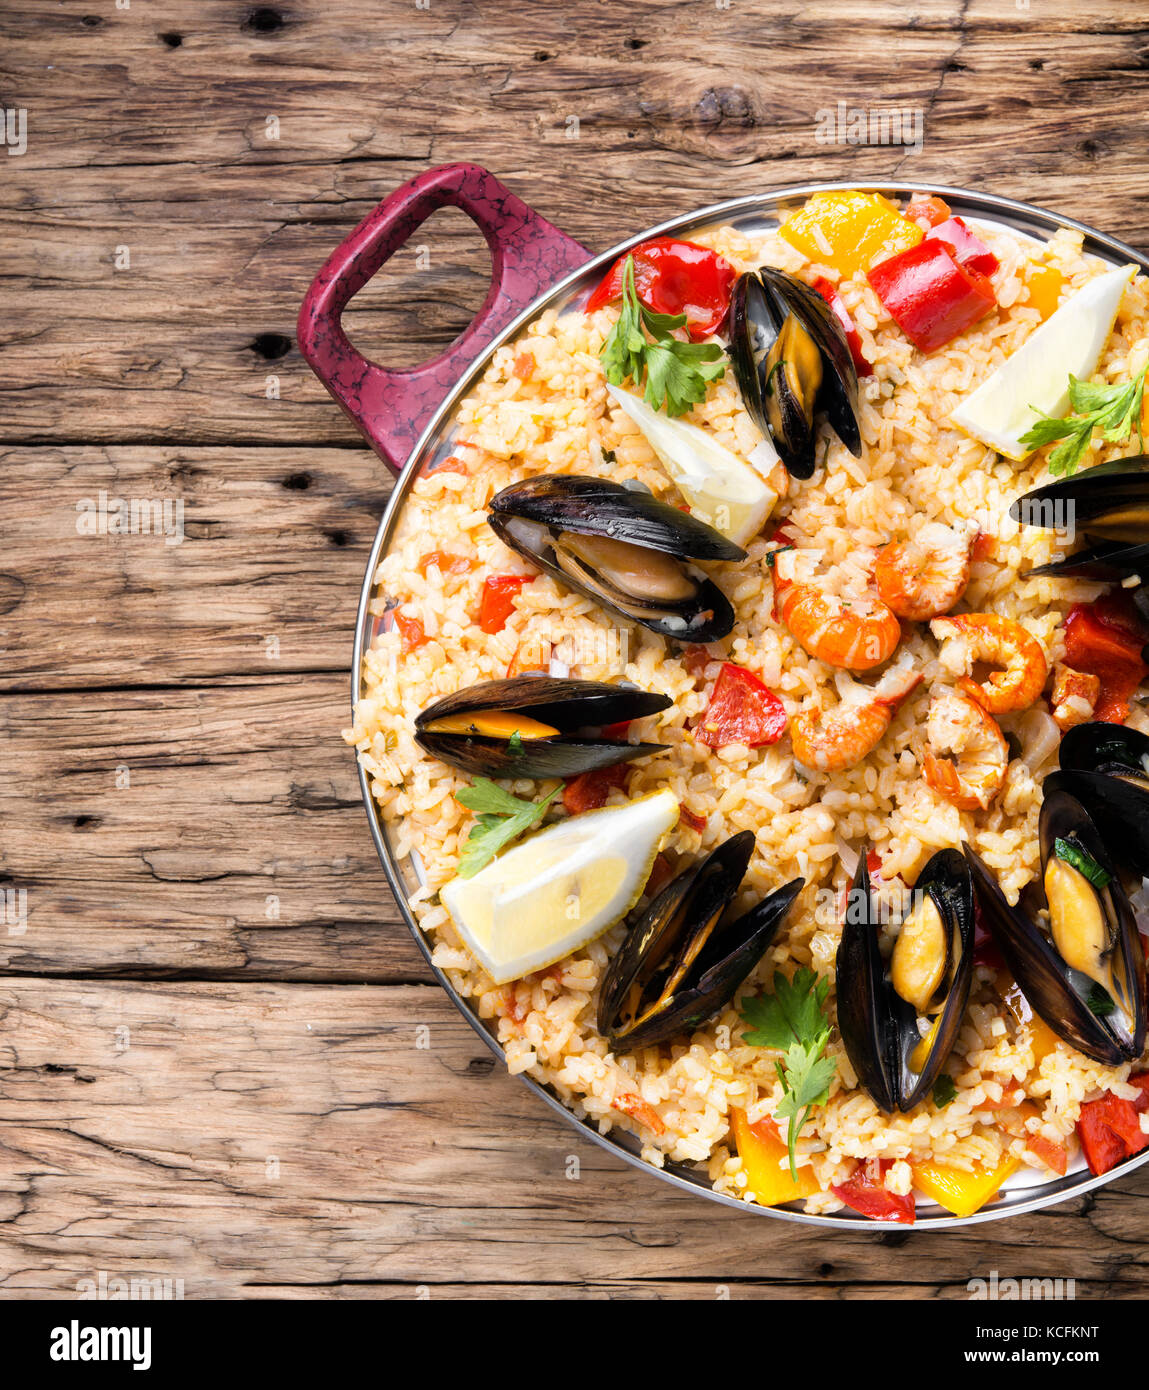 vegetable paella with seafood on wooden background Stock Photo